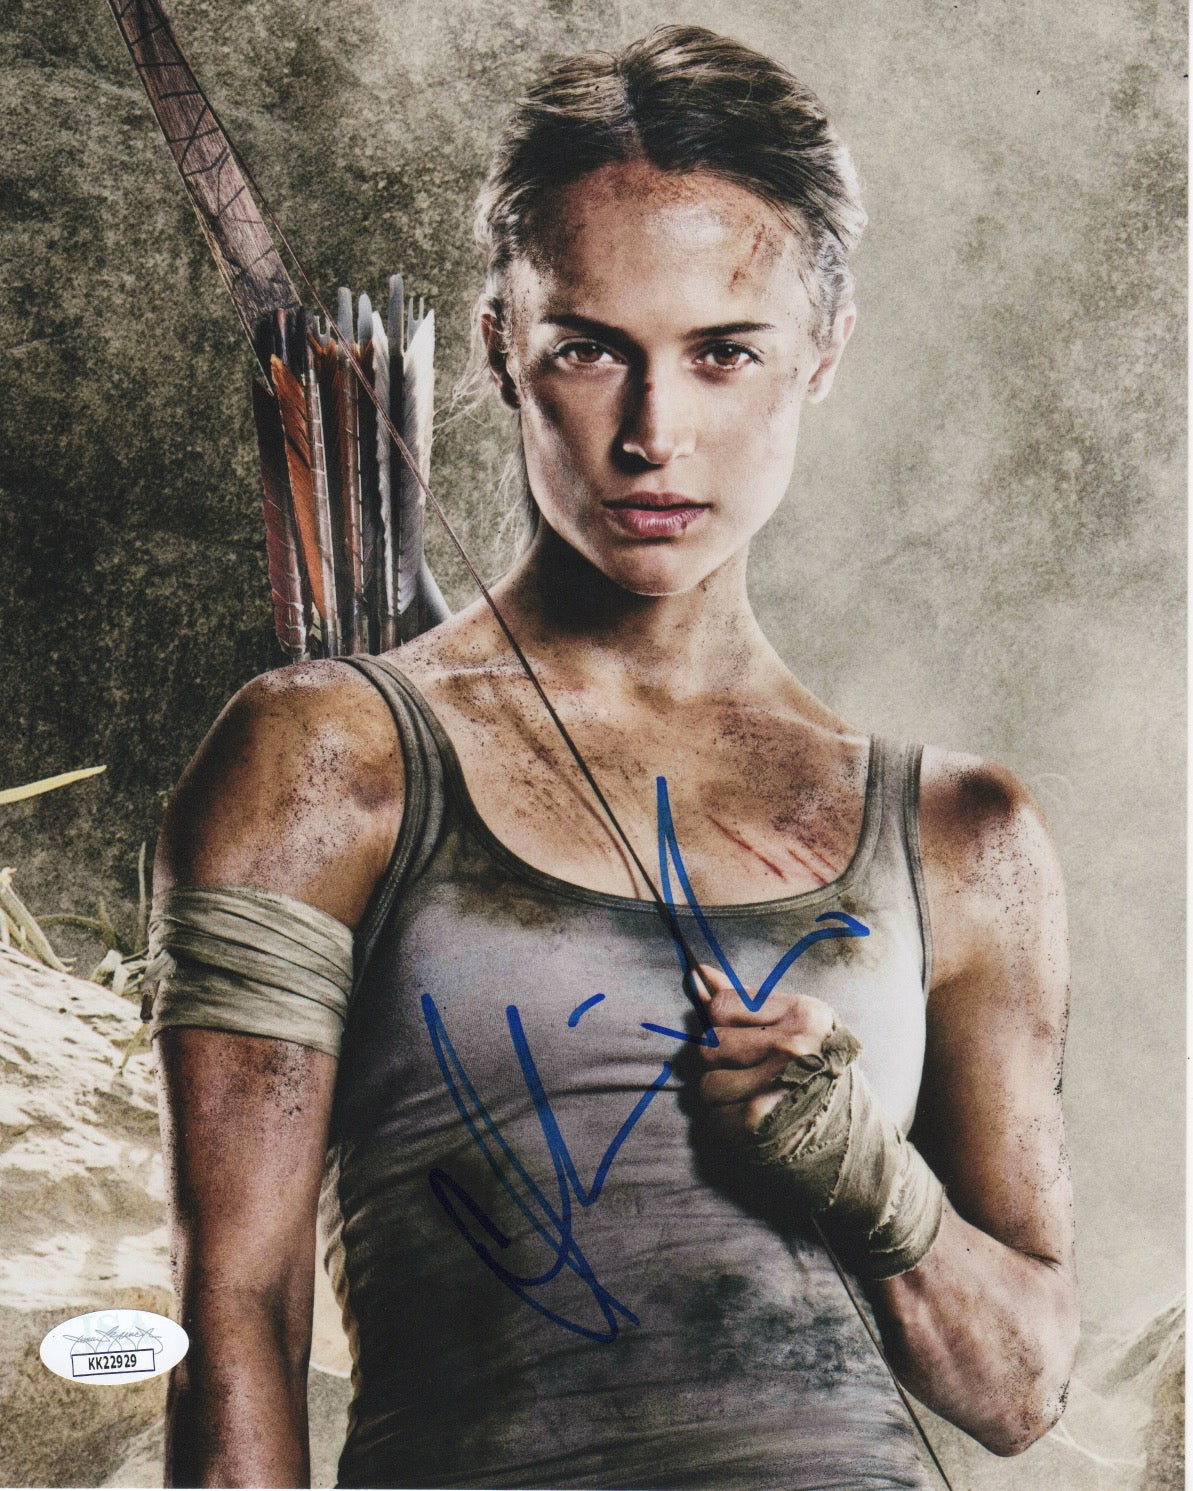 Alicia Vikander Sexy Tomb Raider Signed Autograph 8x10 Photo JSA #8 - Outlaw Hobbies Authentic Autographs